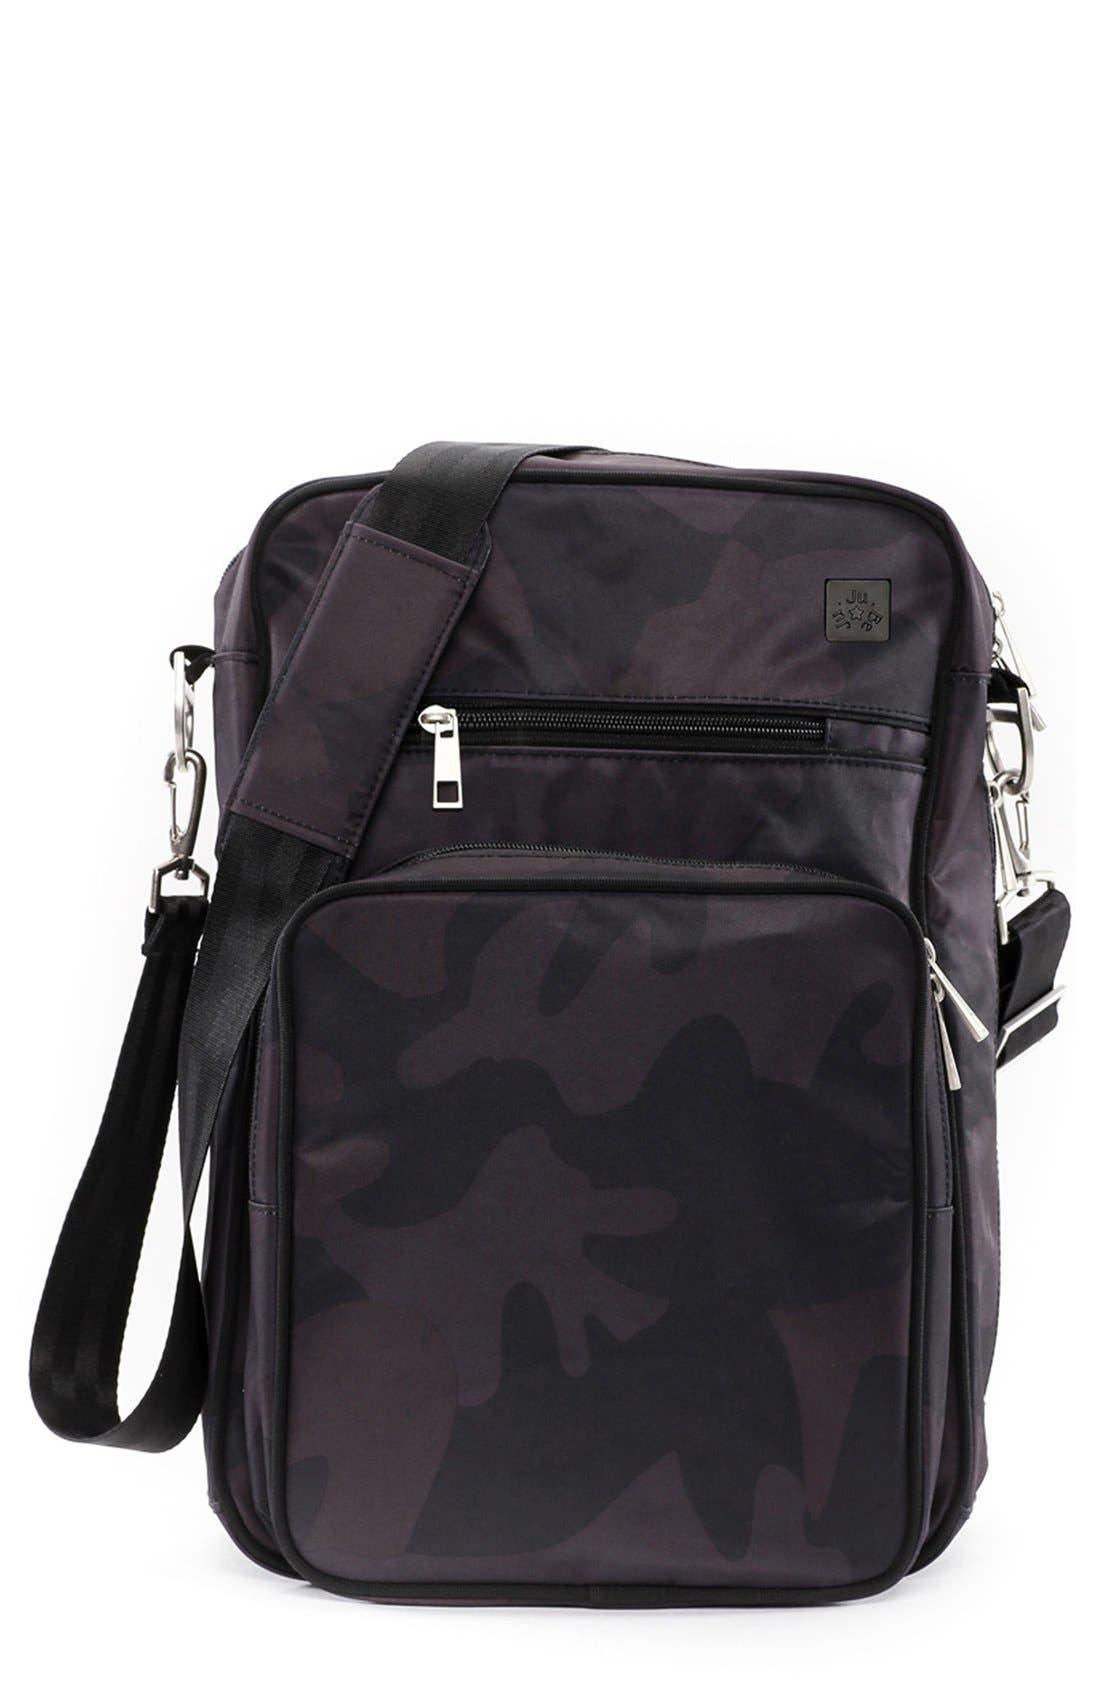 Ju-Ju-Be Helix Onyx Collection Messenger Diaper Bag